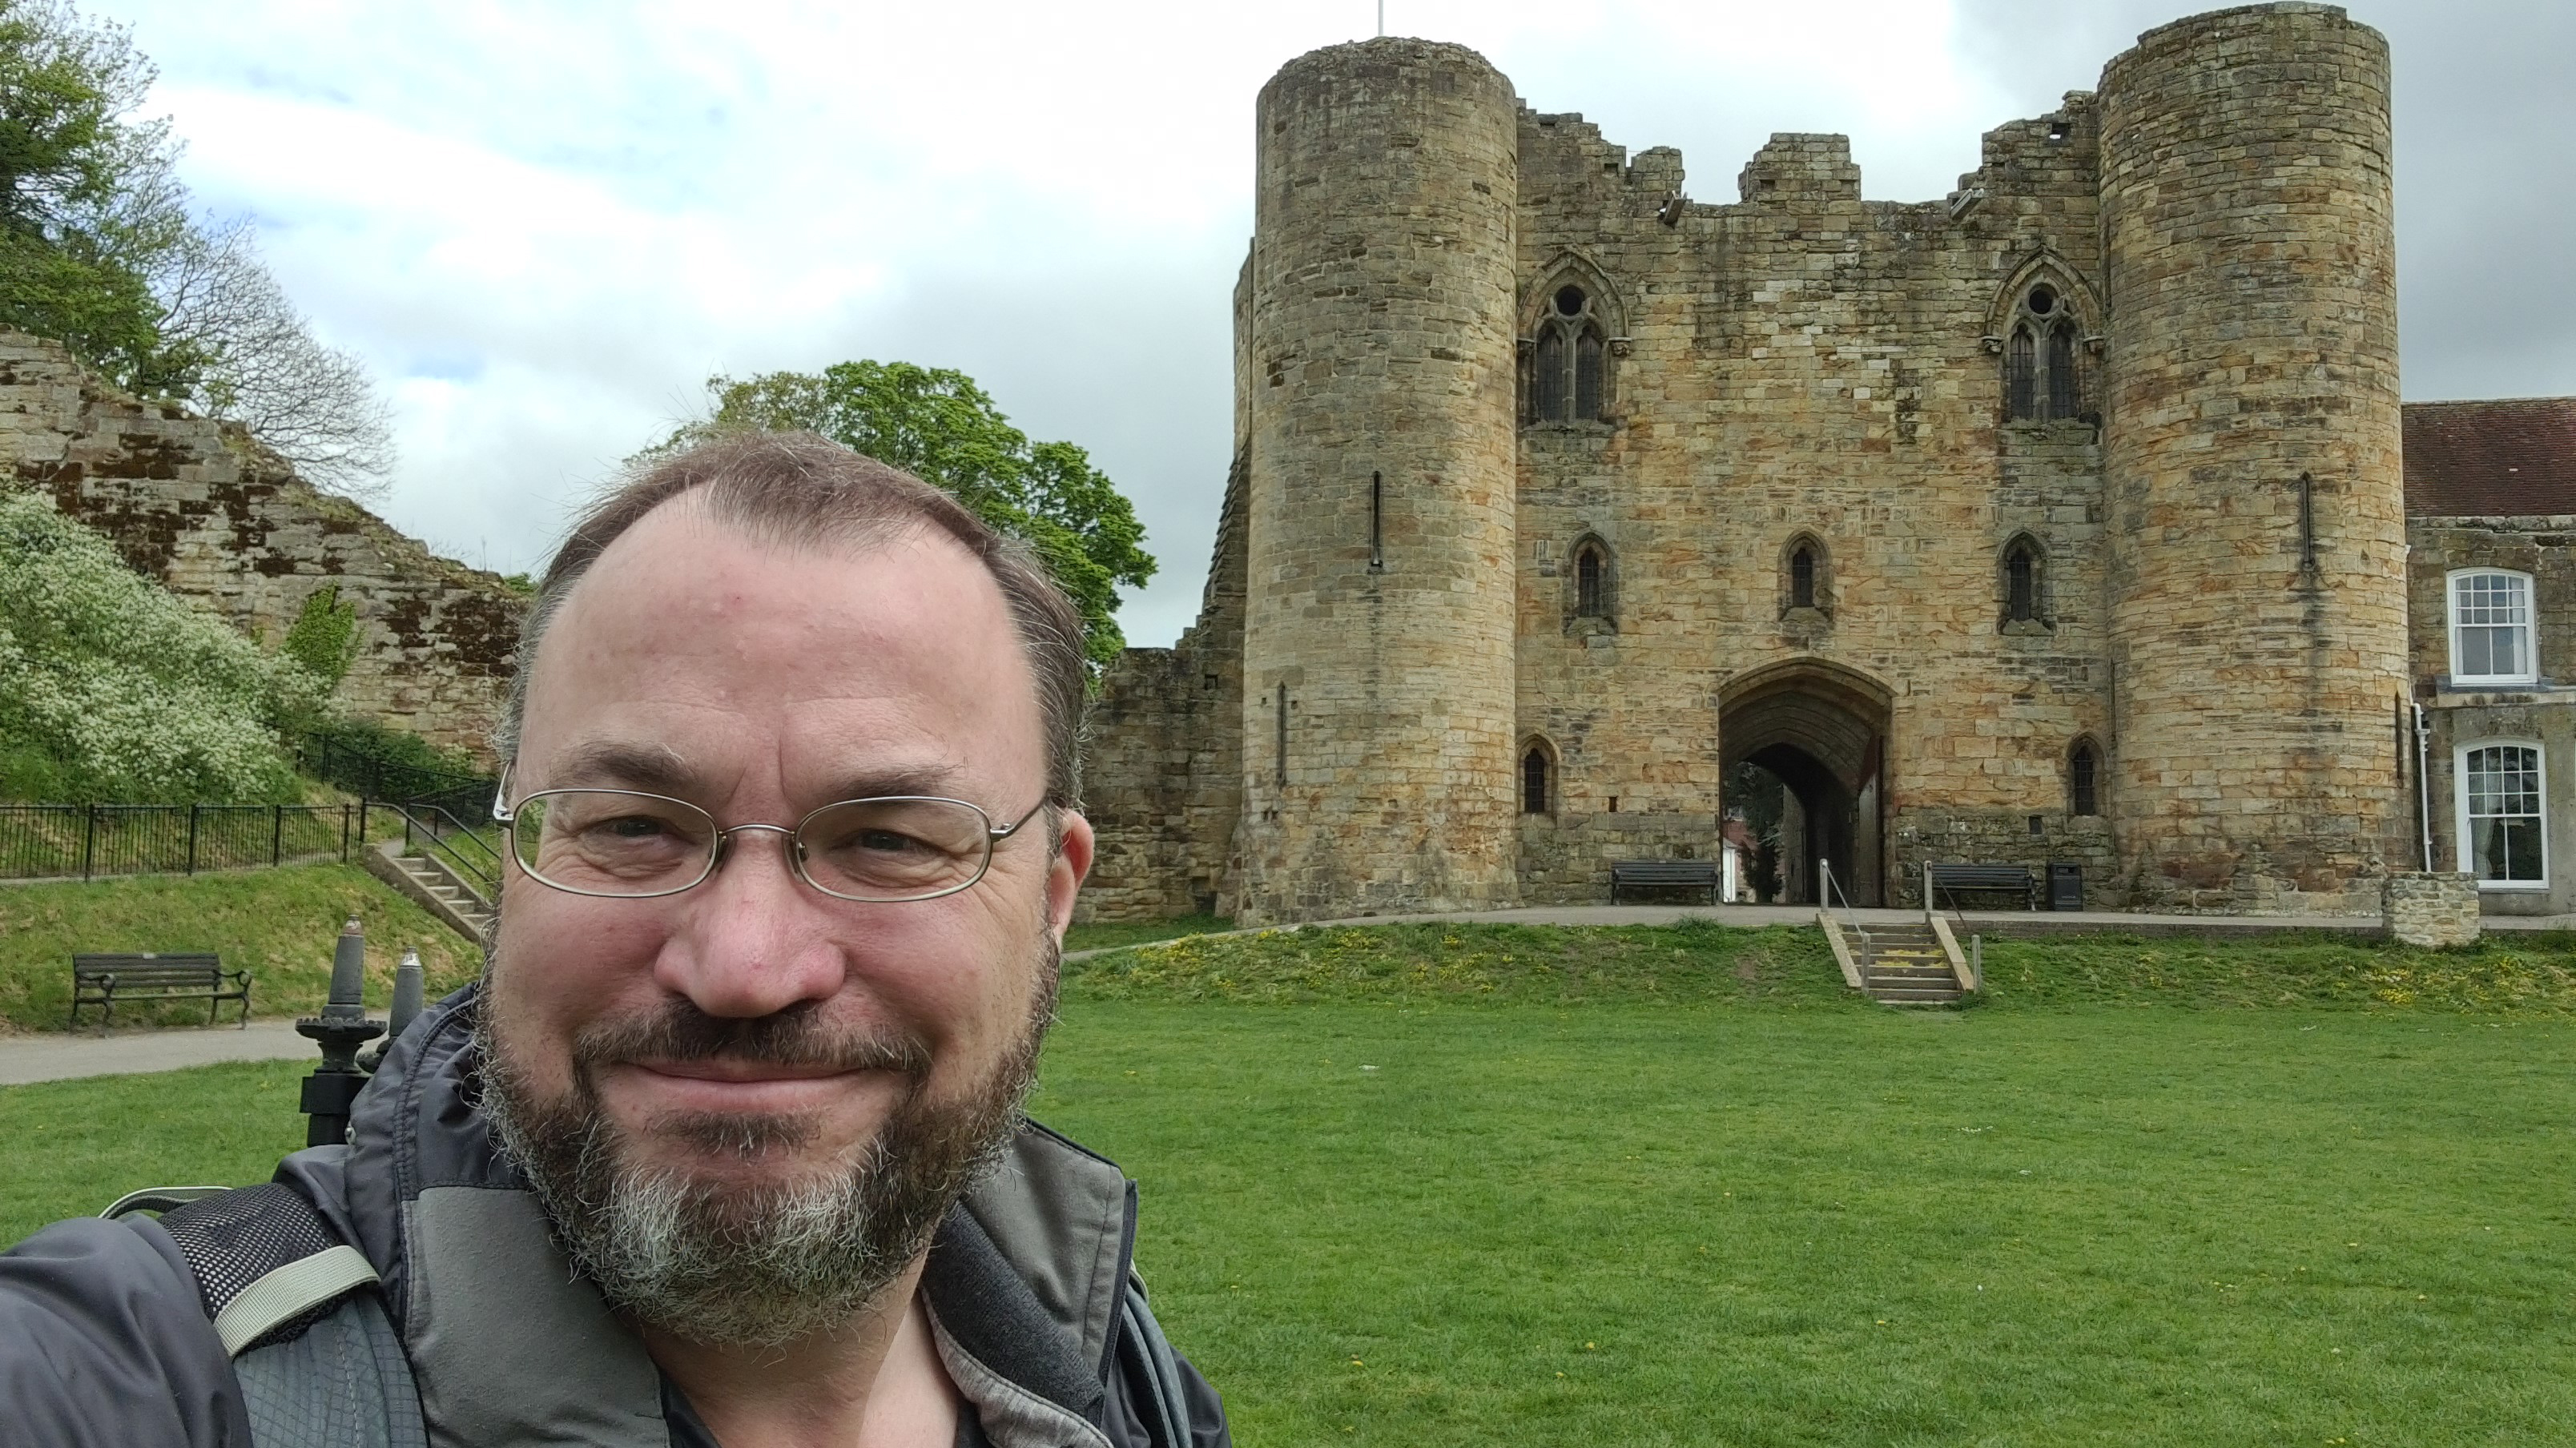 Looking rather pleased with himself- Three Points of the Compass sets off from Tonbridge Castle on the Medway Valley Walk